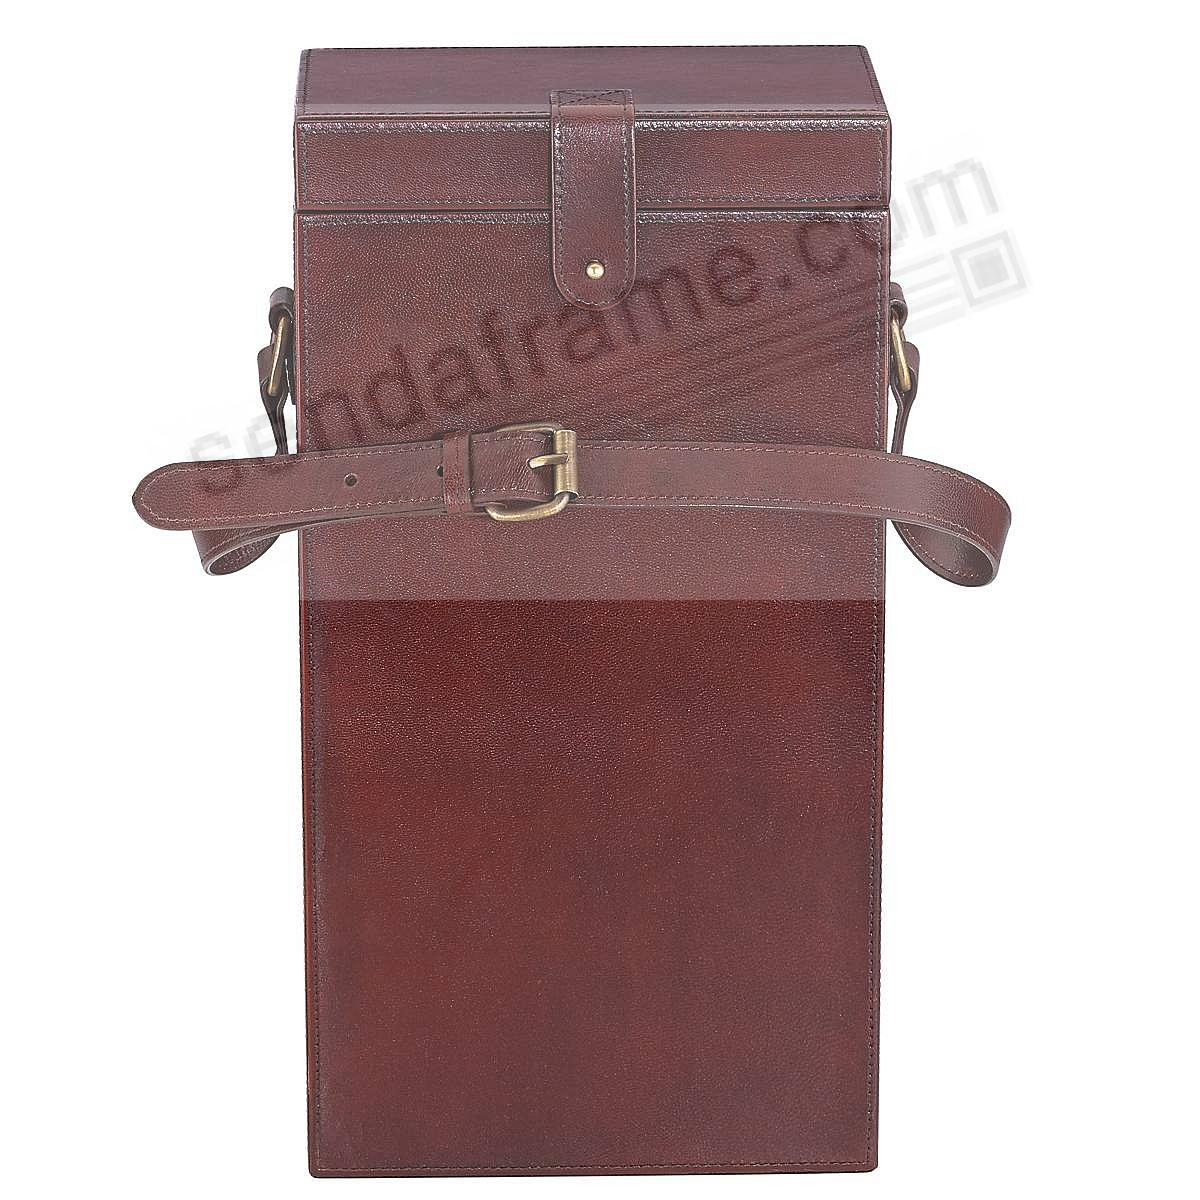 Sumptuous Dark Brown Leather HUDSON SPIRIT HOLDER by Reed & Barton®